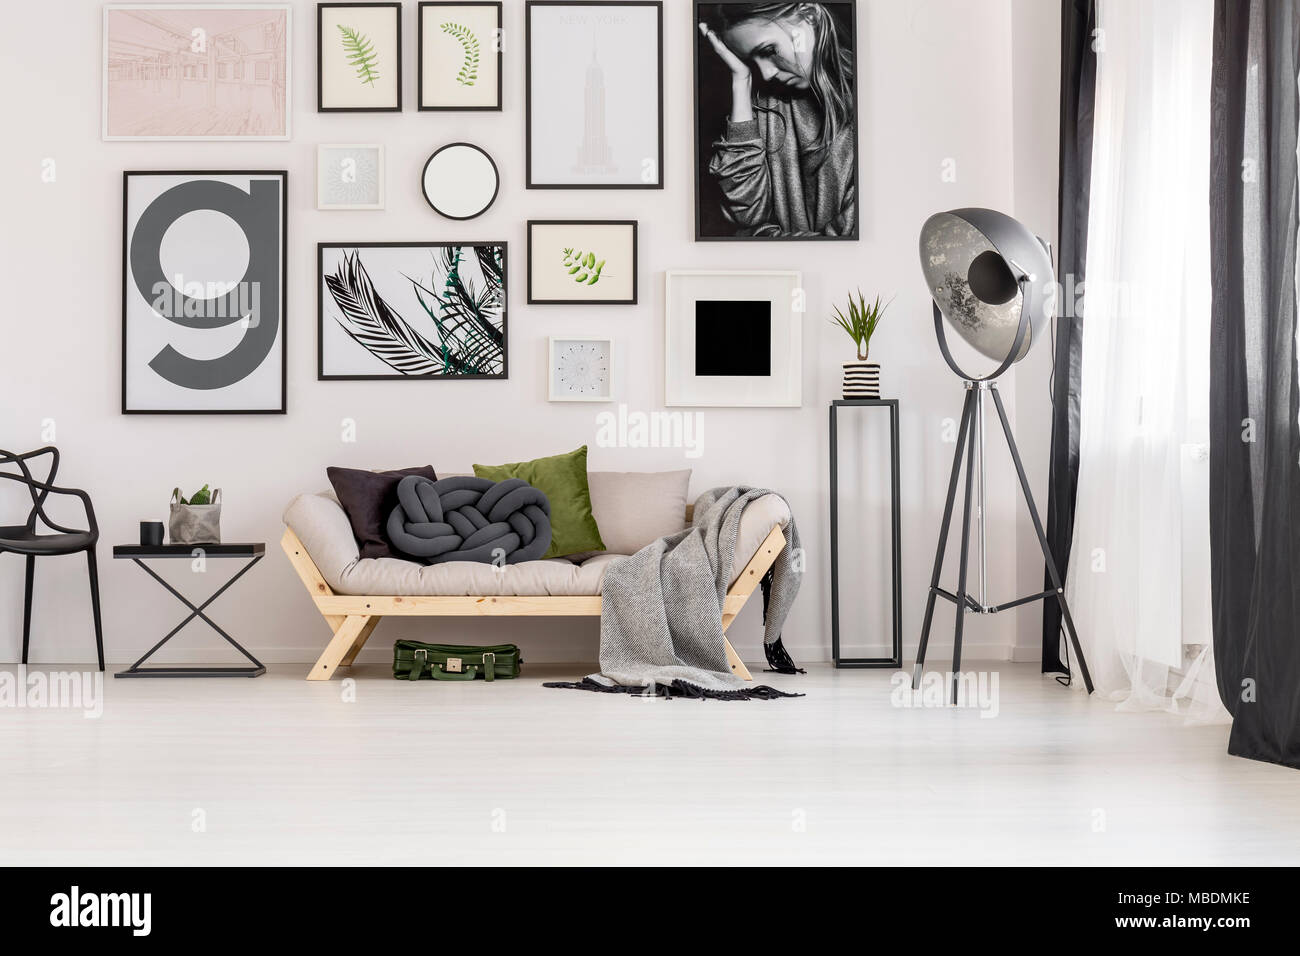 Green suitcase under a comfy sofa with pillows and blanket in a living room interior decorated with posters - Stock Image